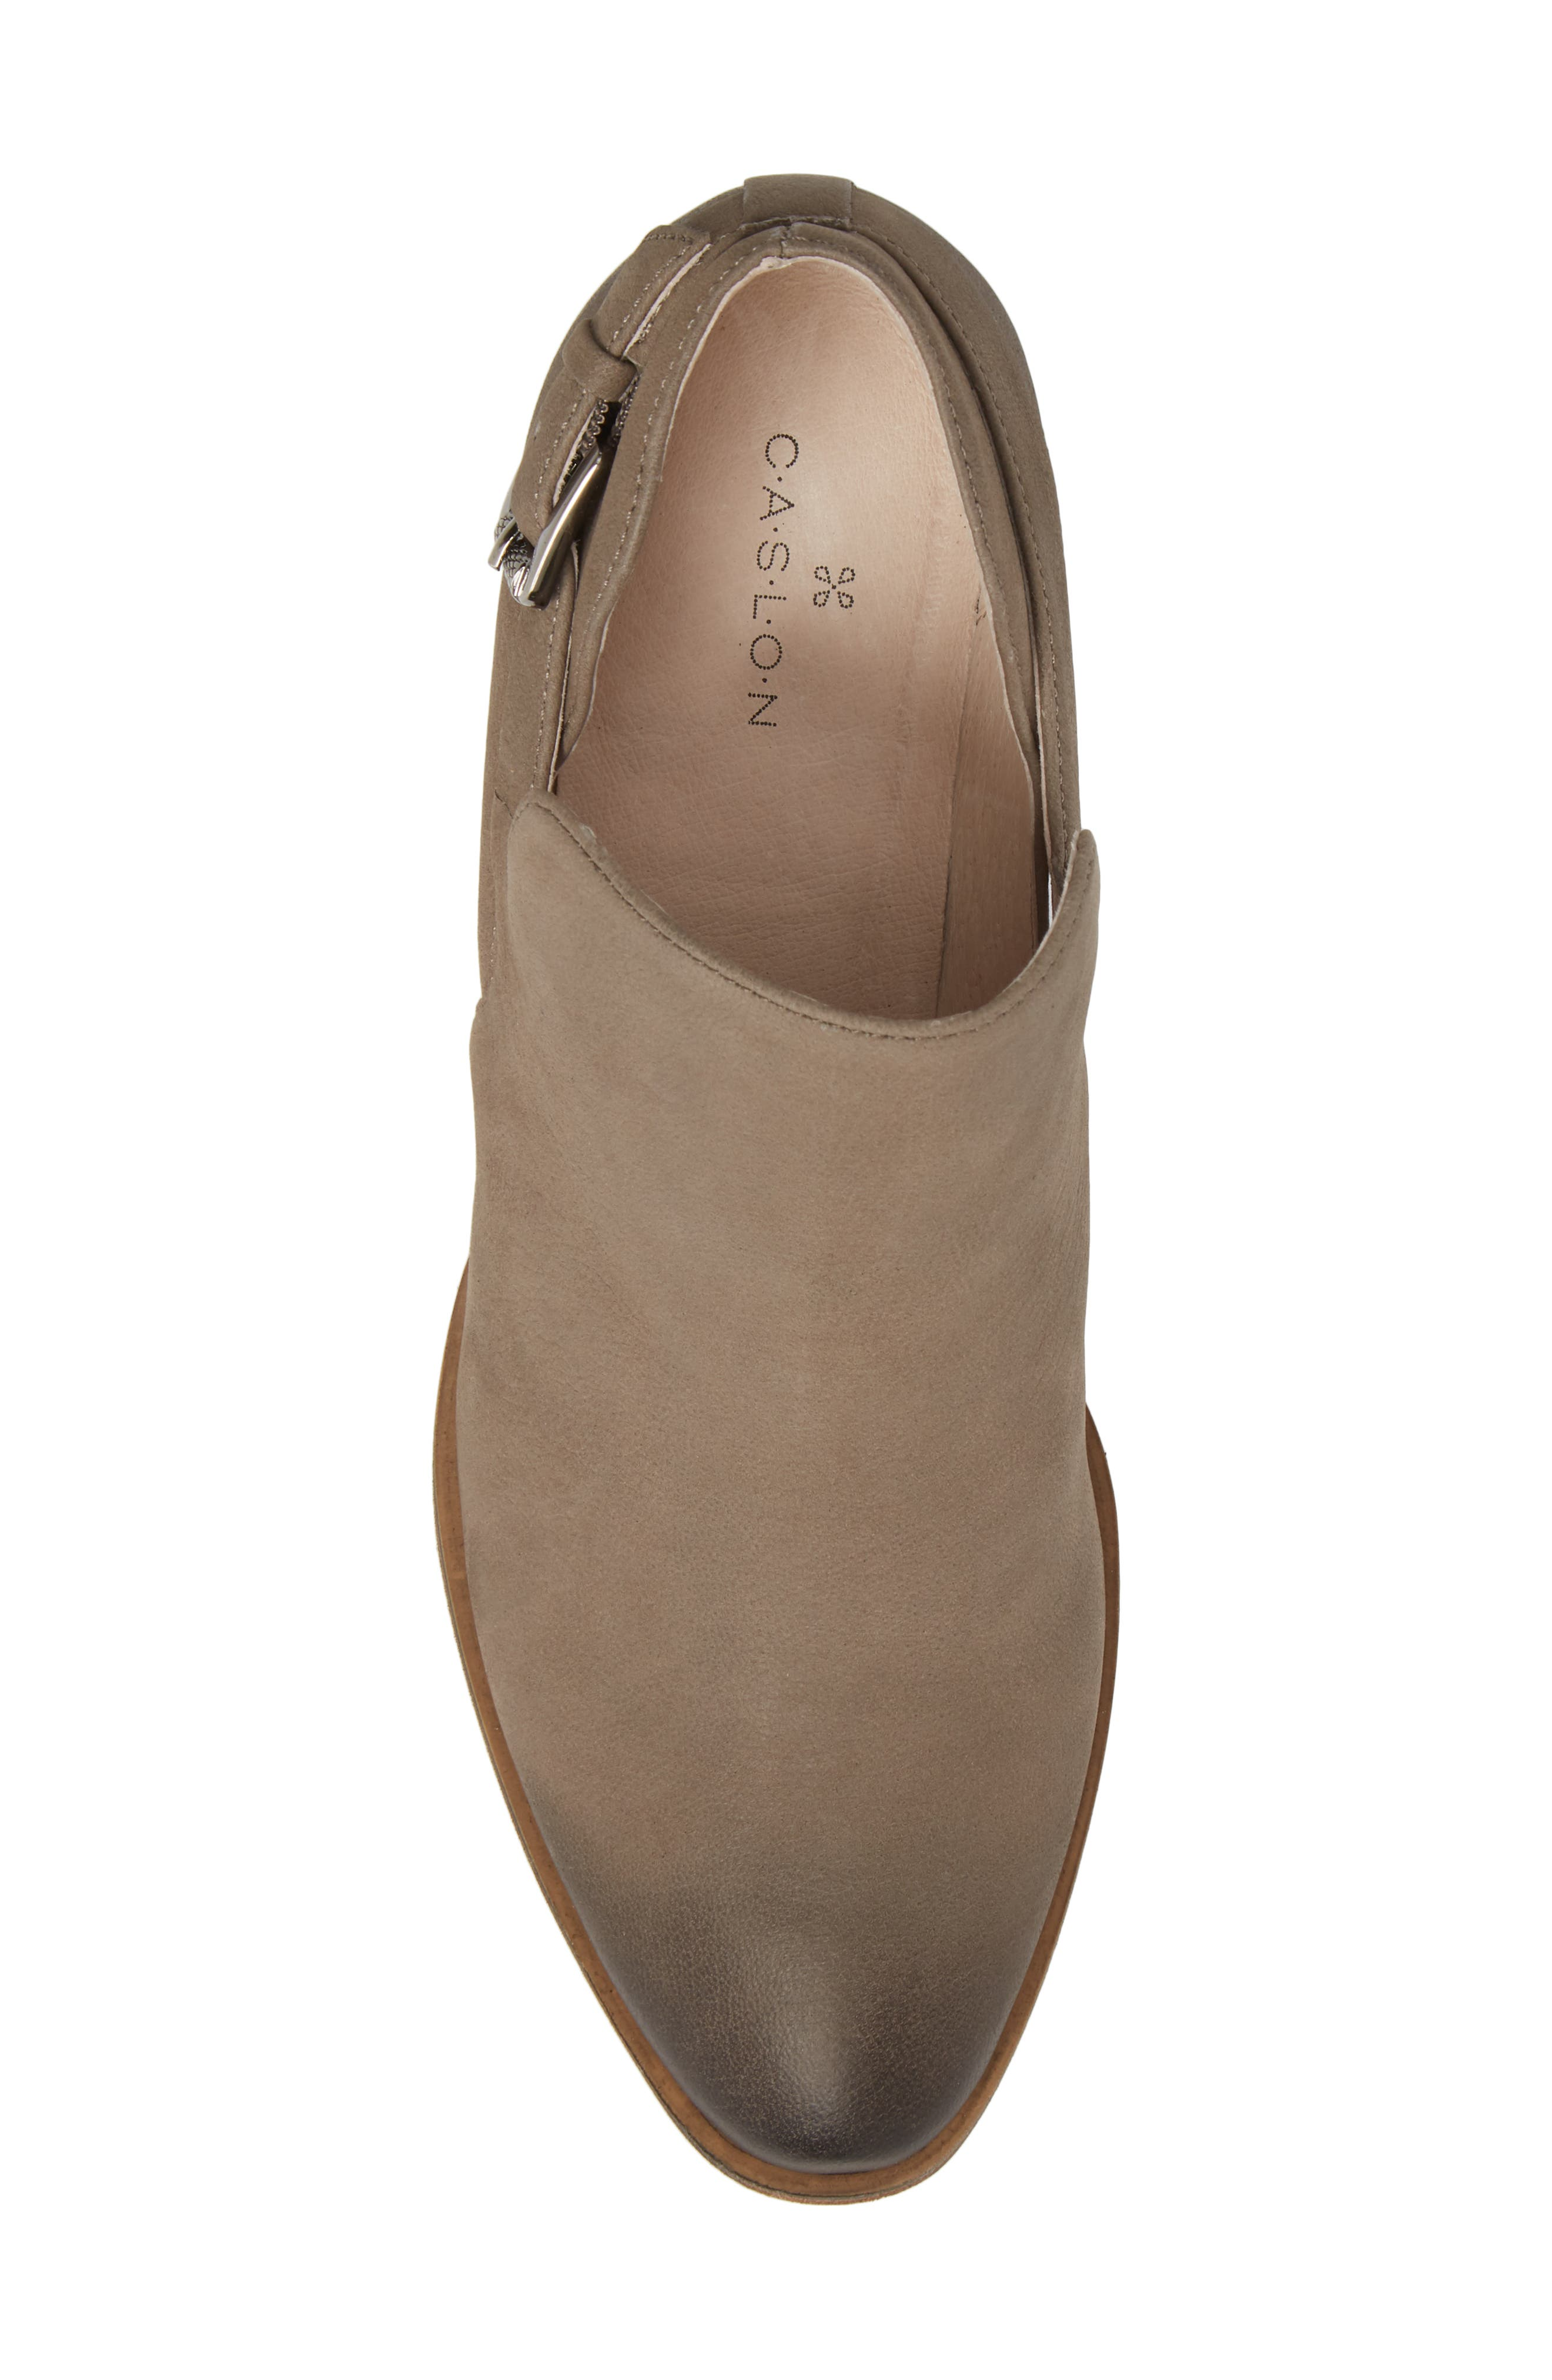 Toby Bootie,                             Alternate thumbnail 5, color,                             STONE OILED NUBUCK